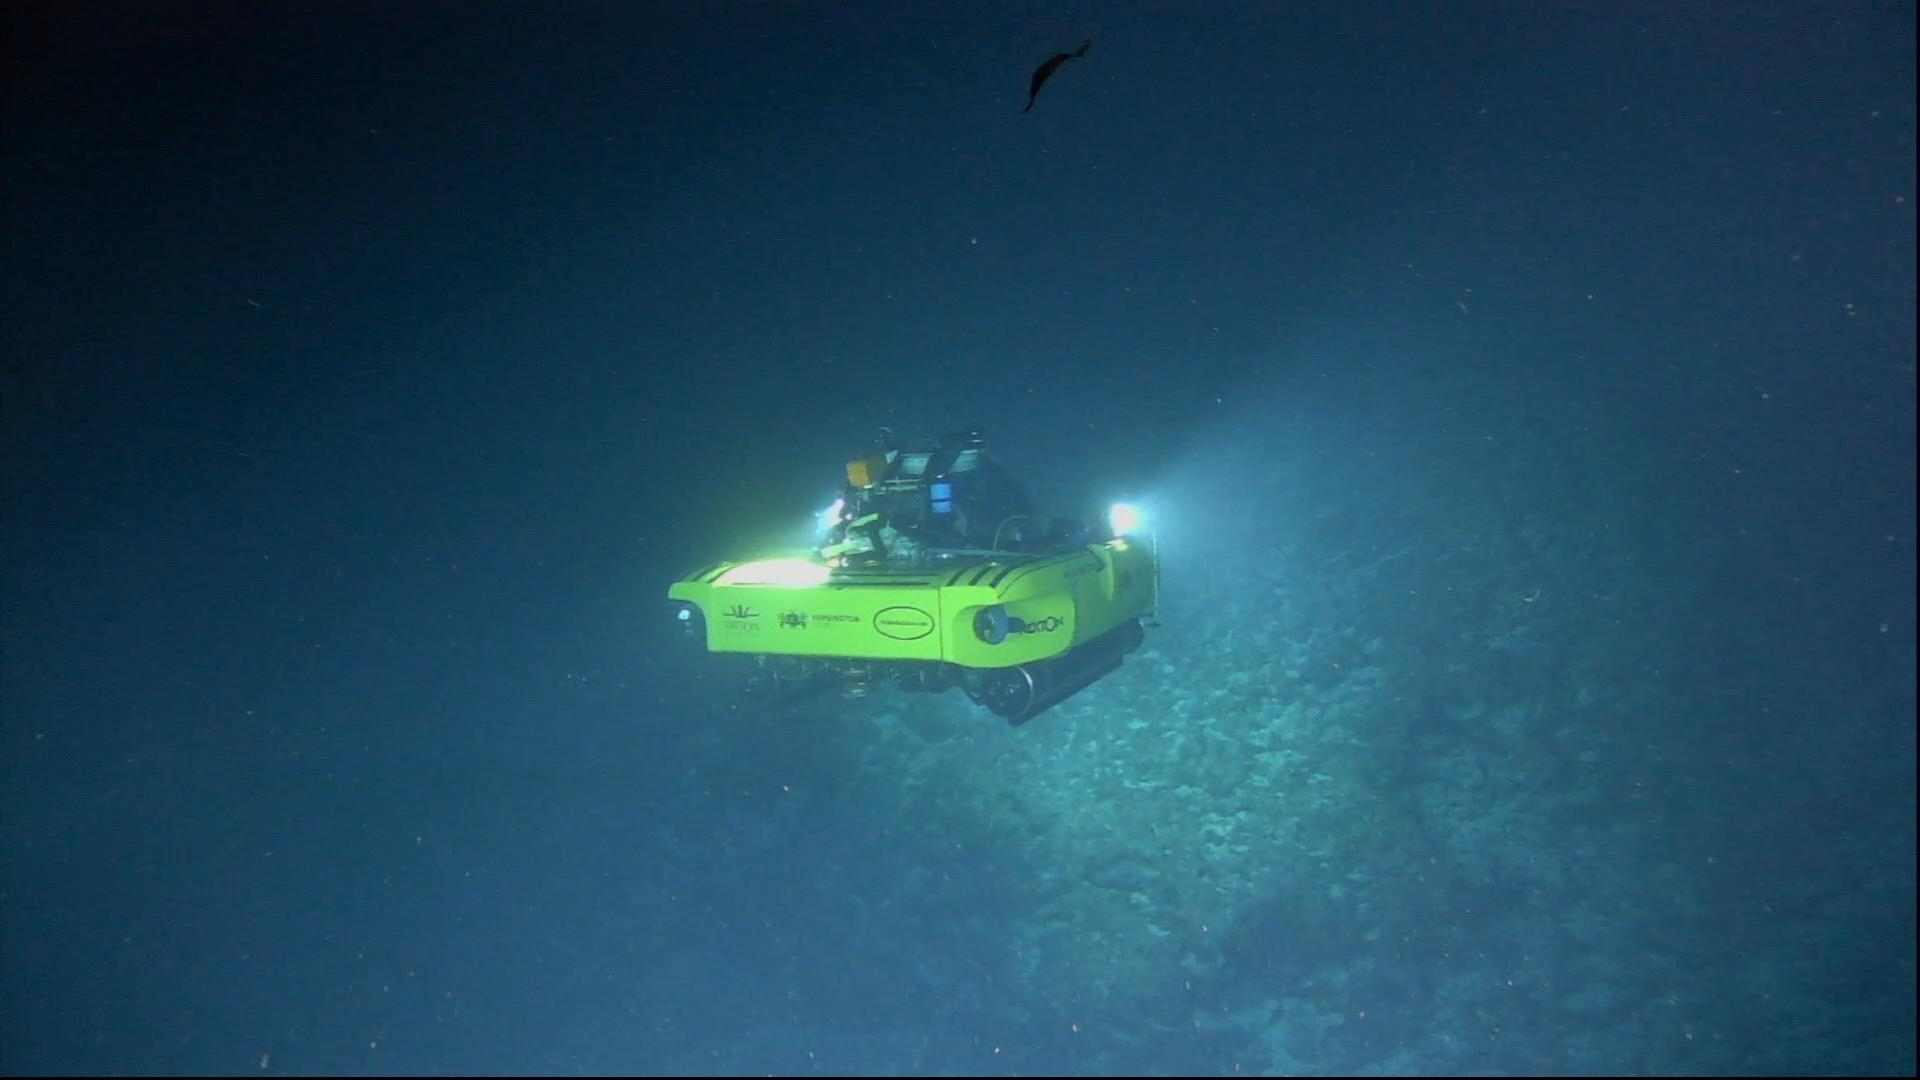 2 Submersible equipped with Teledyne Bowtech lights and cameras deep dive